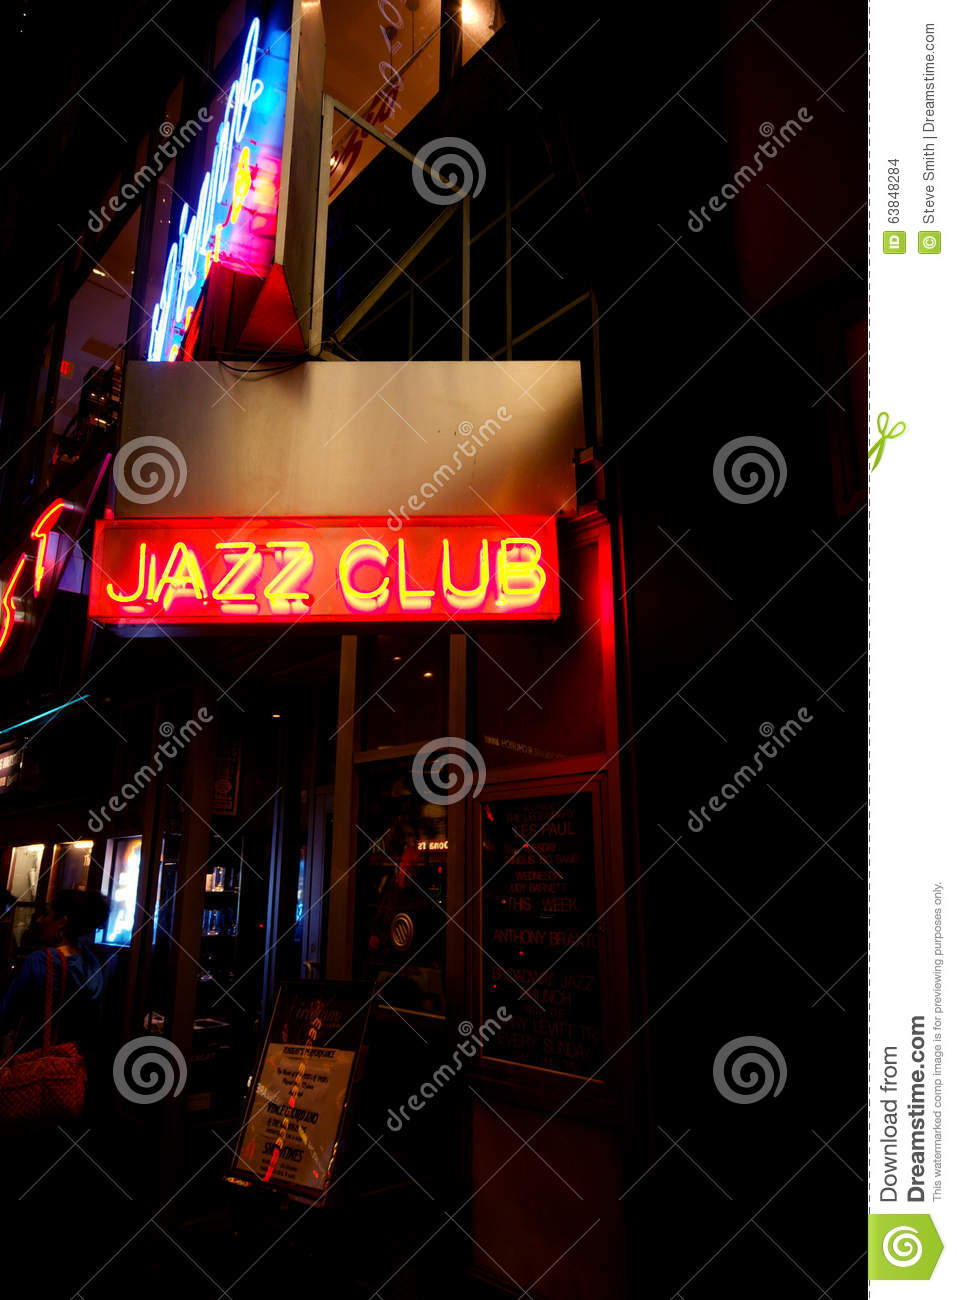 Neonteken voor Jazz Club in Manhattan